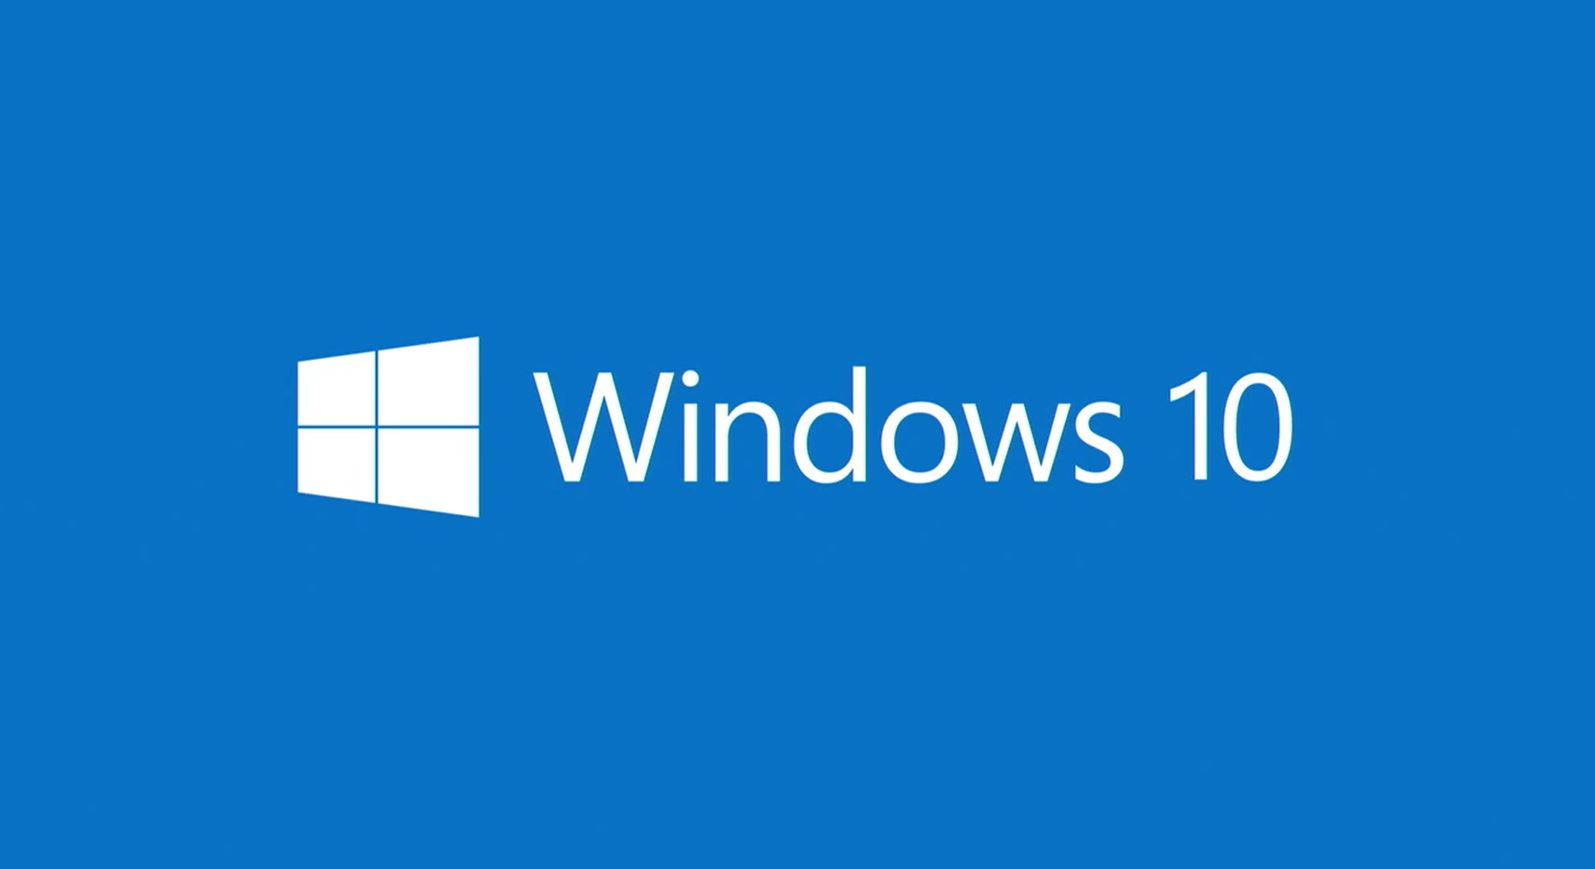 Microsoft releases new windows 10 build 9879 isos for What is microsoft windows